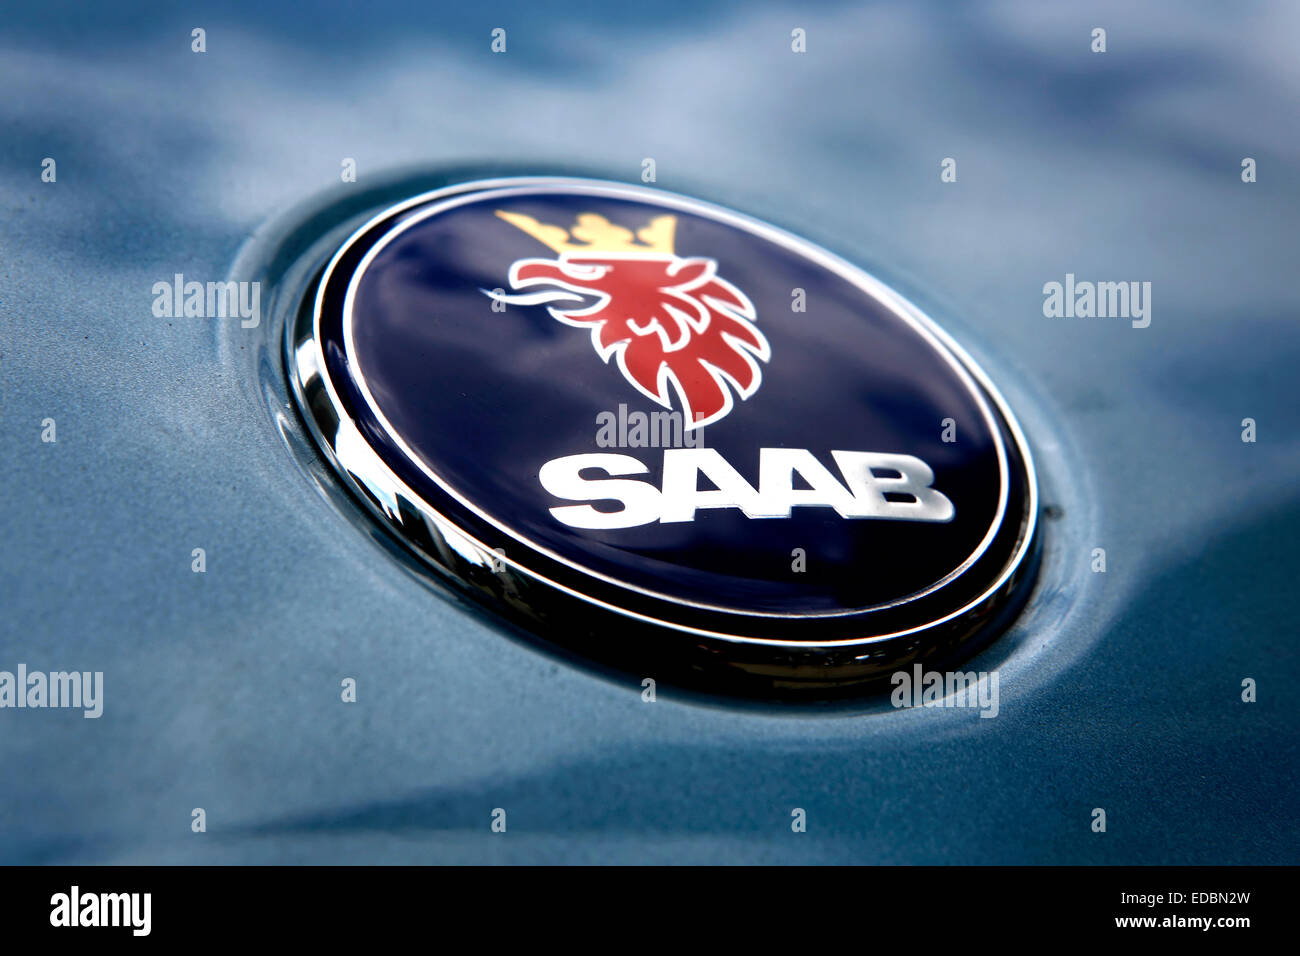 Picture shows a highly polished blue Saab on the Motorexpo exhibition in Canary Wharf, London. - Stock Image